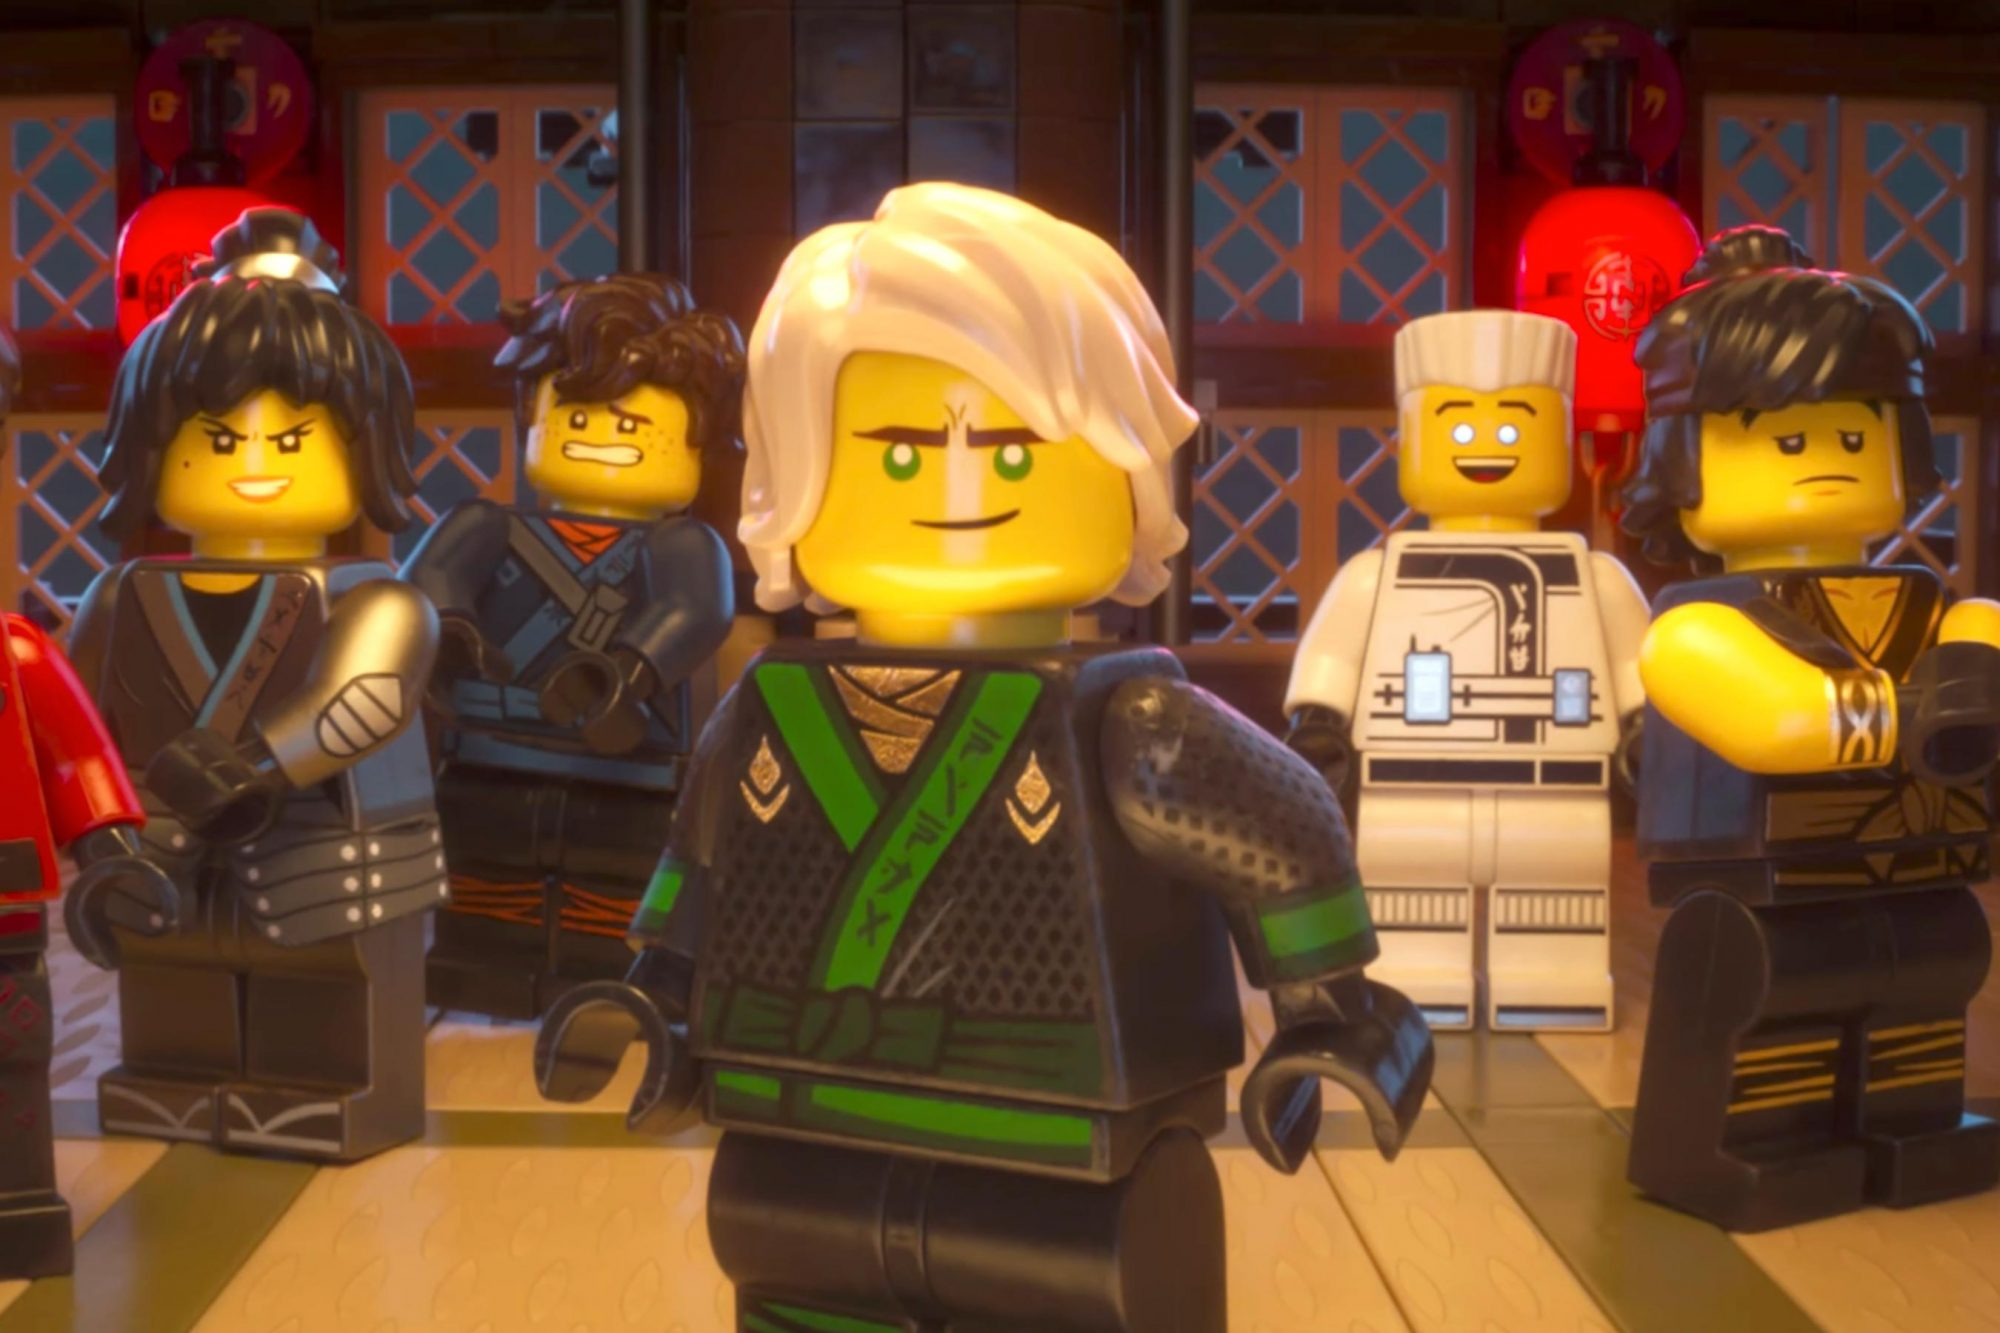 The LEGO NINJAGO Movie - Trailer 1 (screen grab)CR: LEGO/Warner Bros.